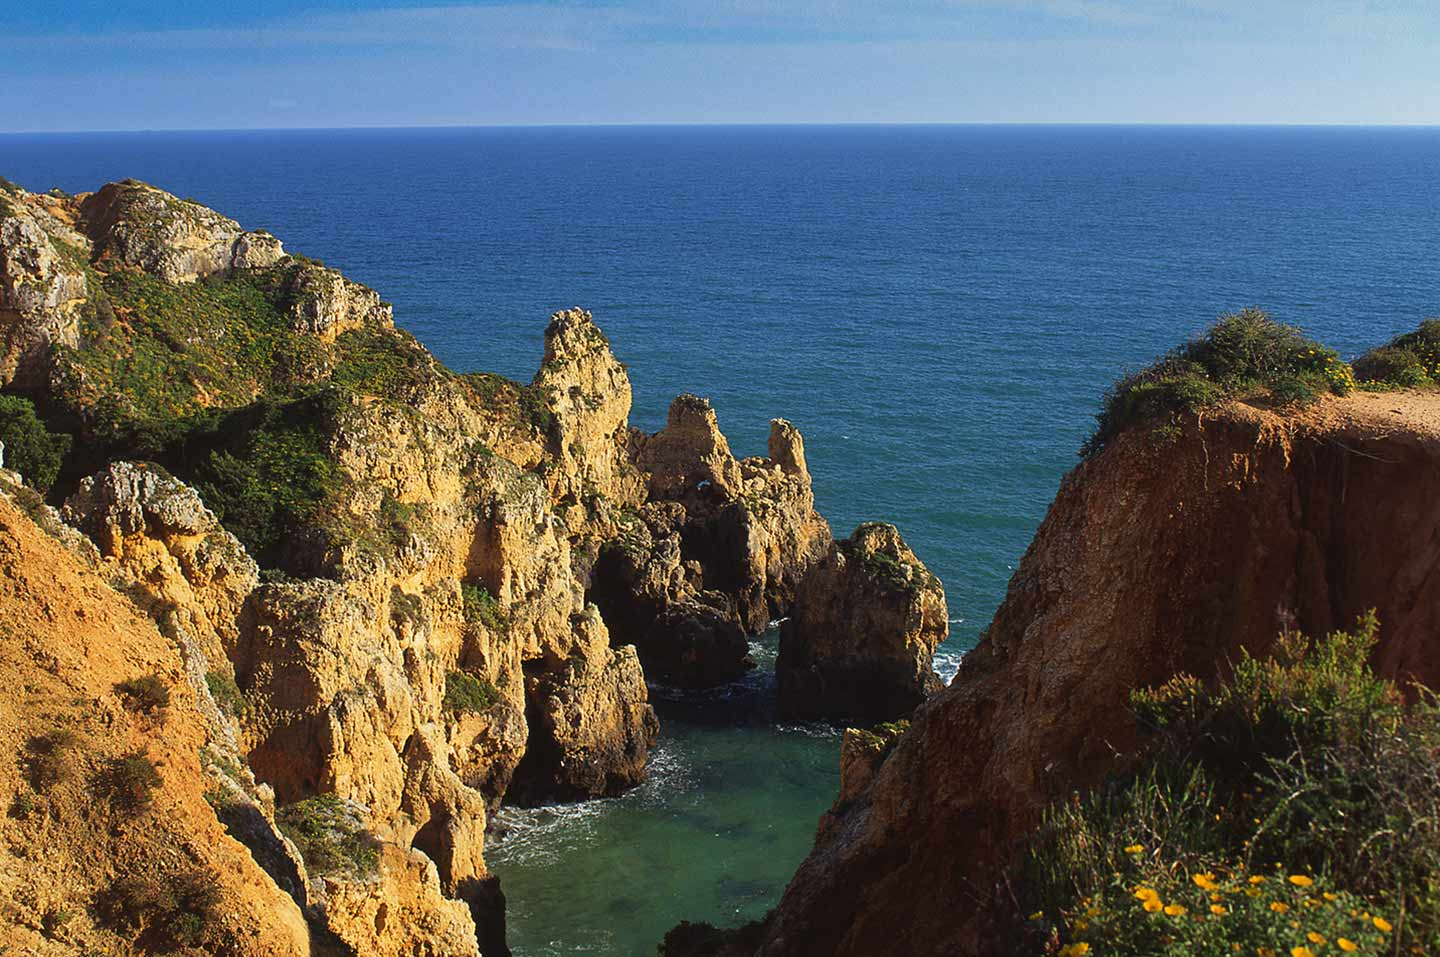 Image of spectacular rock formations at Ponta da Piedade, Lagos